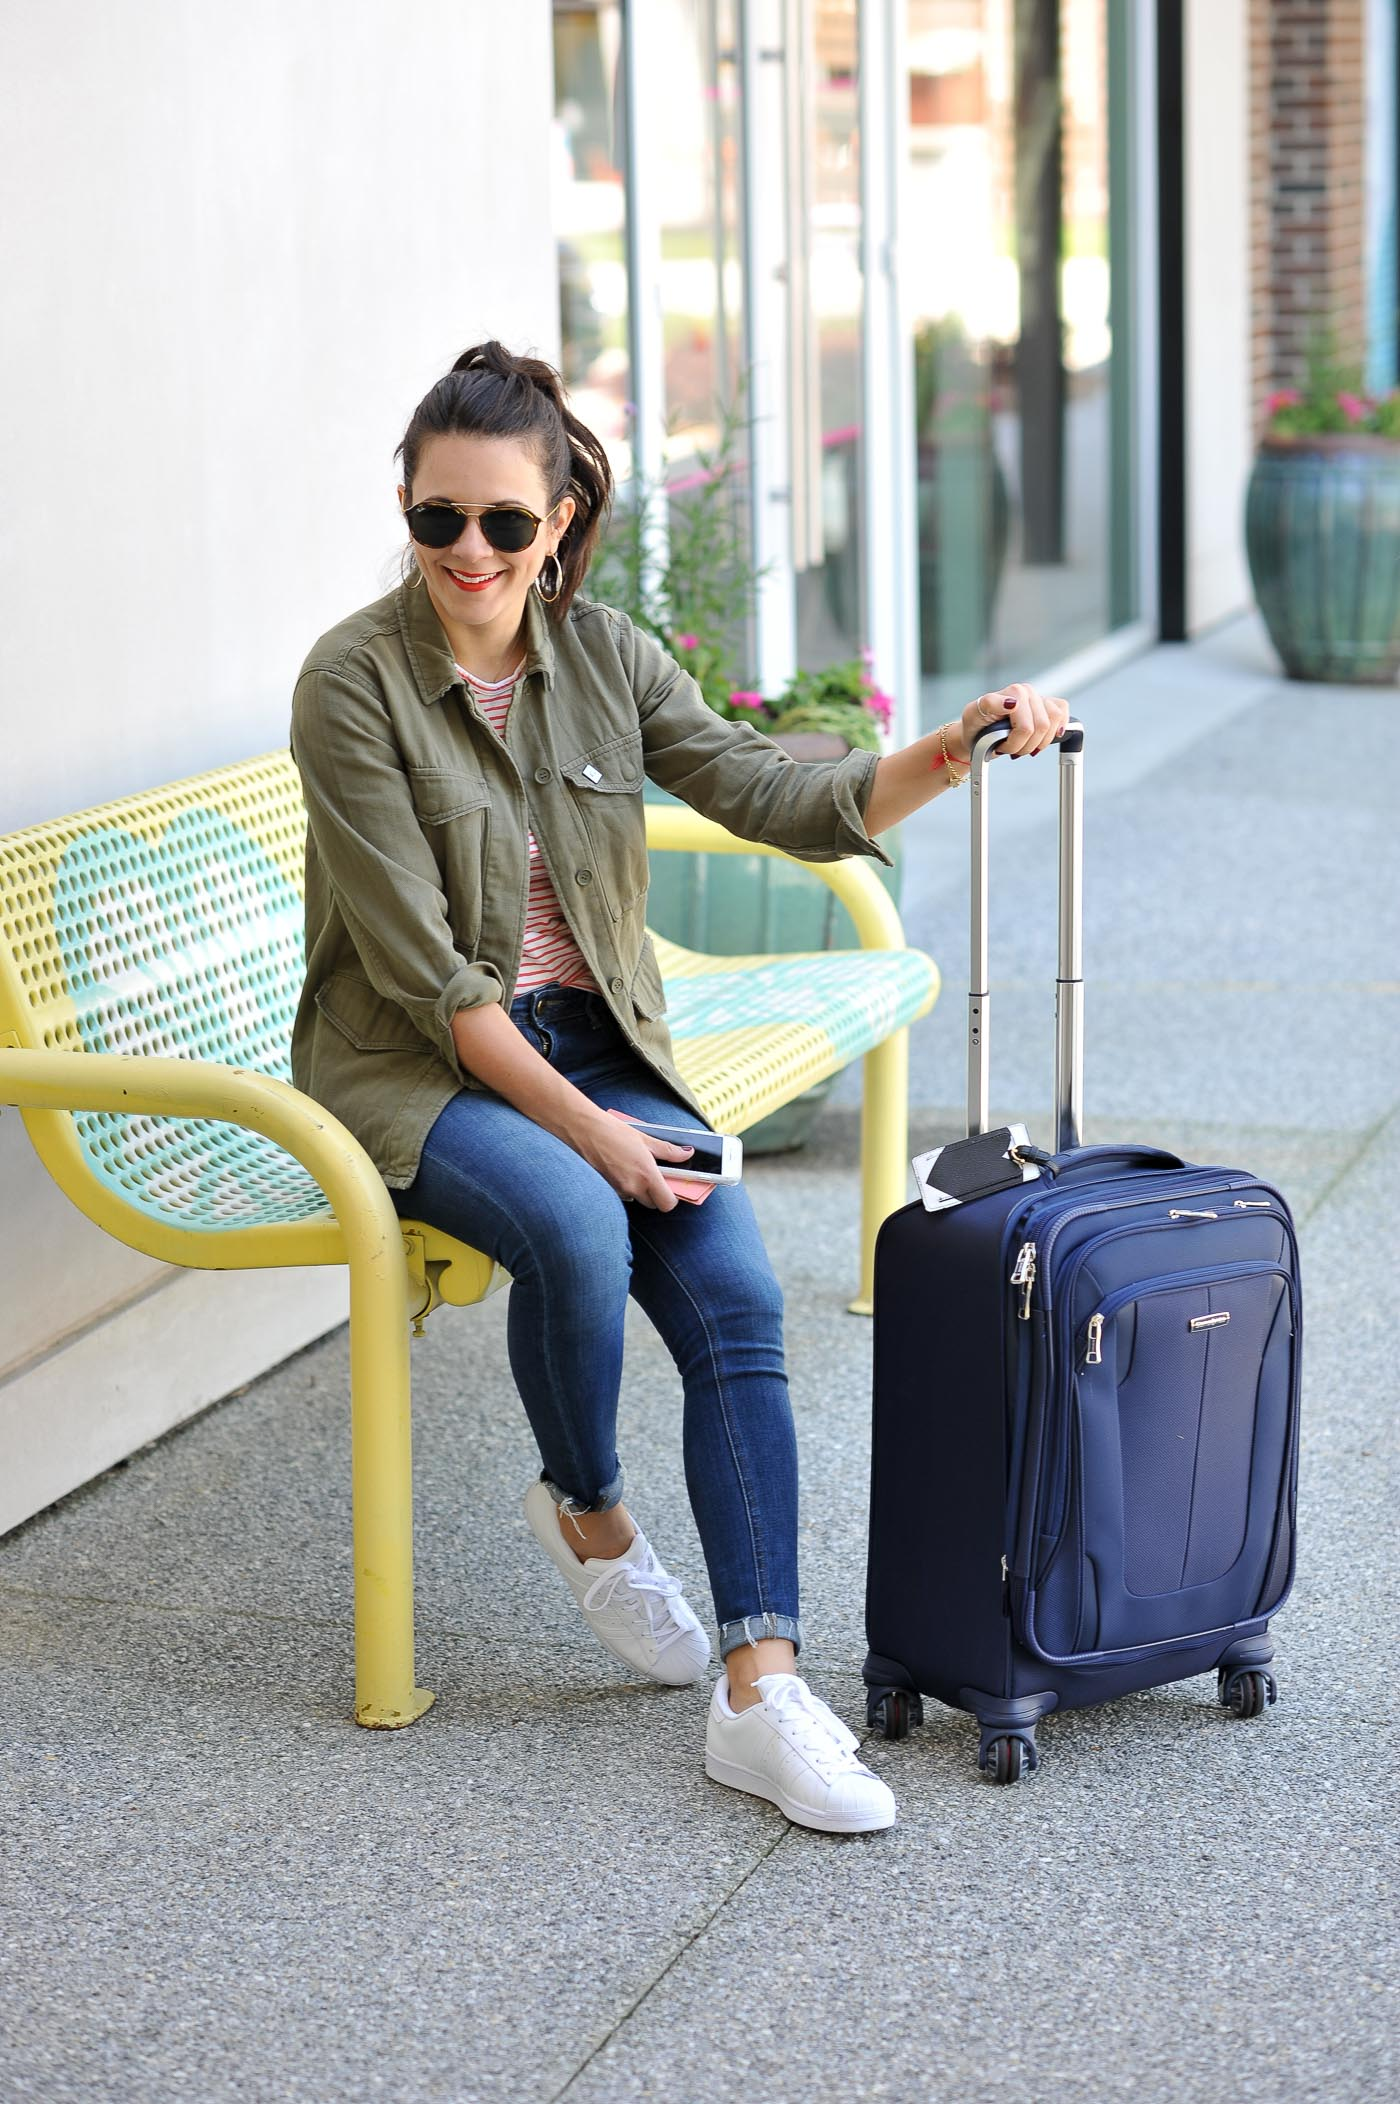 How to dress comfortably for the airport and still look cute, airport style, suitcase - My Style Vita @mystylevita